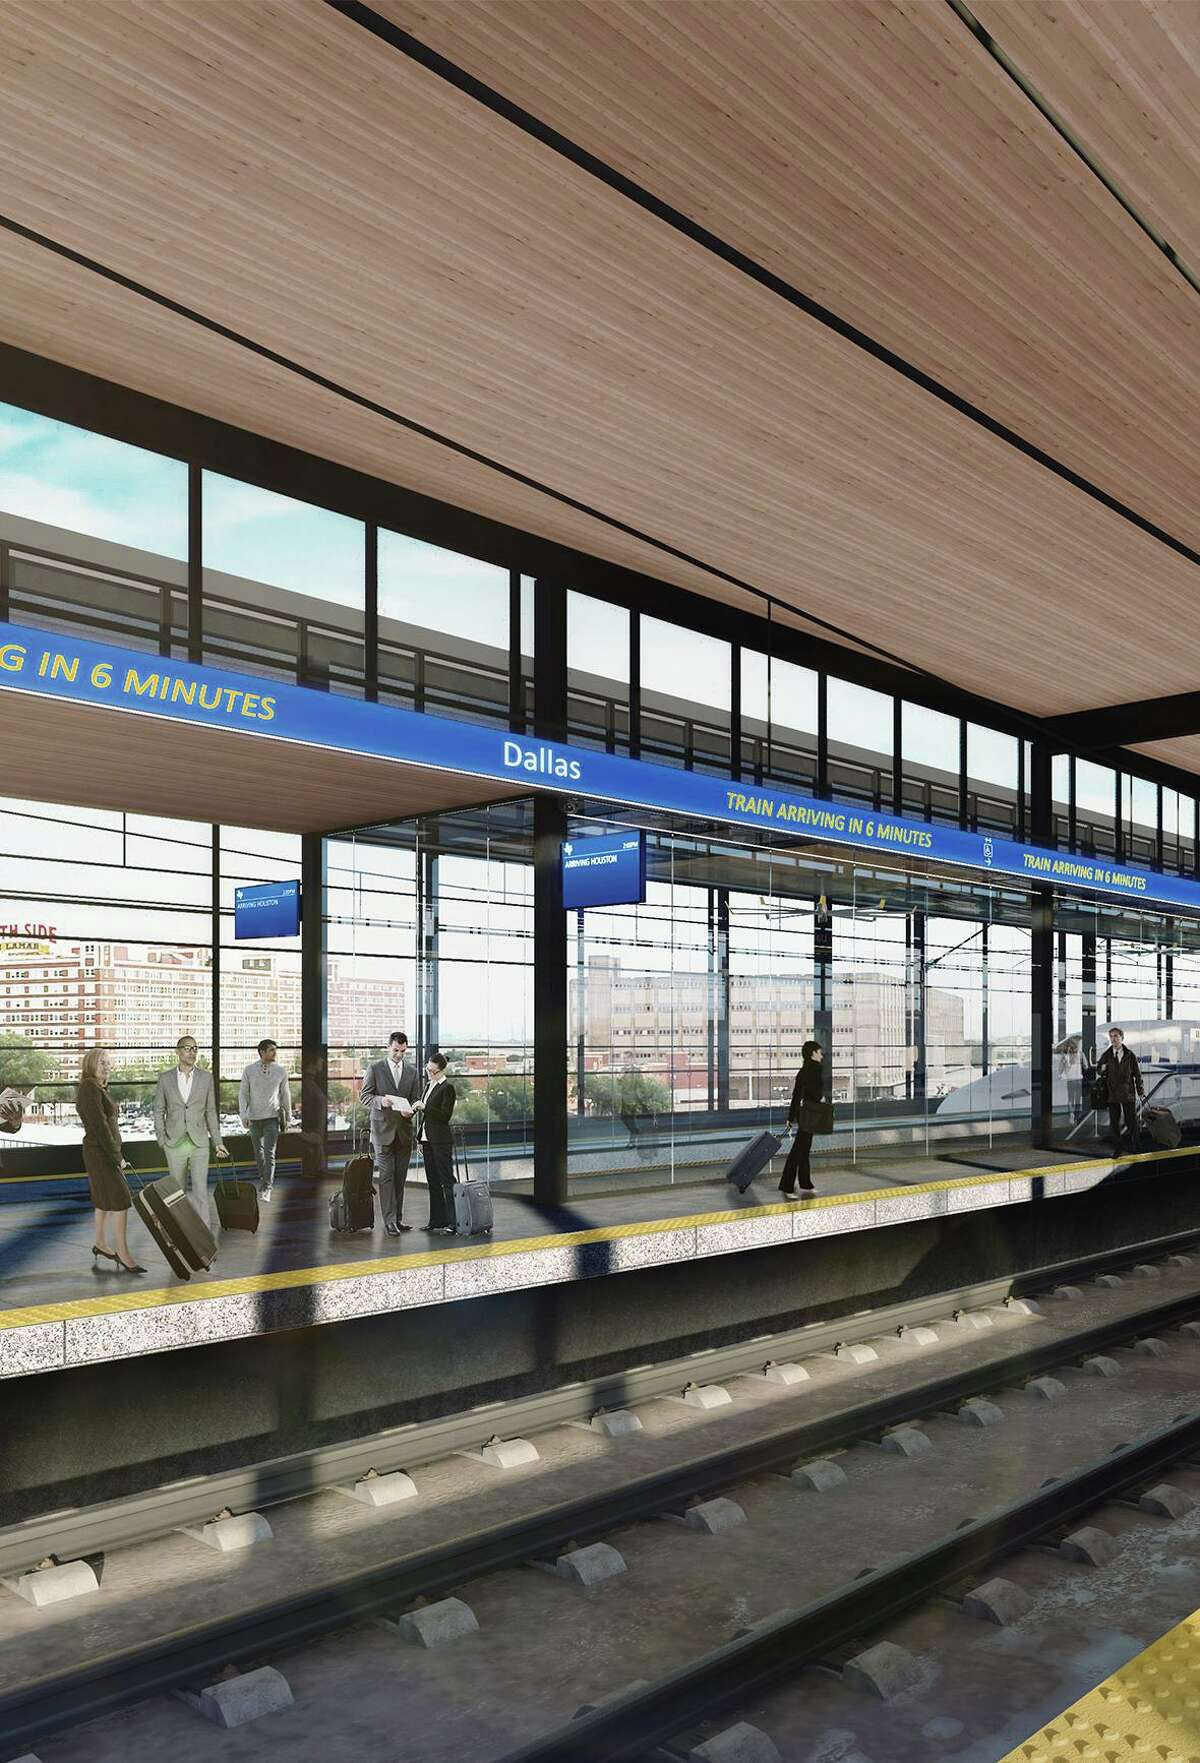 An artist's rendering of proposed high-speed rail platform in Dallas. (Courtesy Texas Central/TNS)